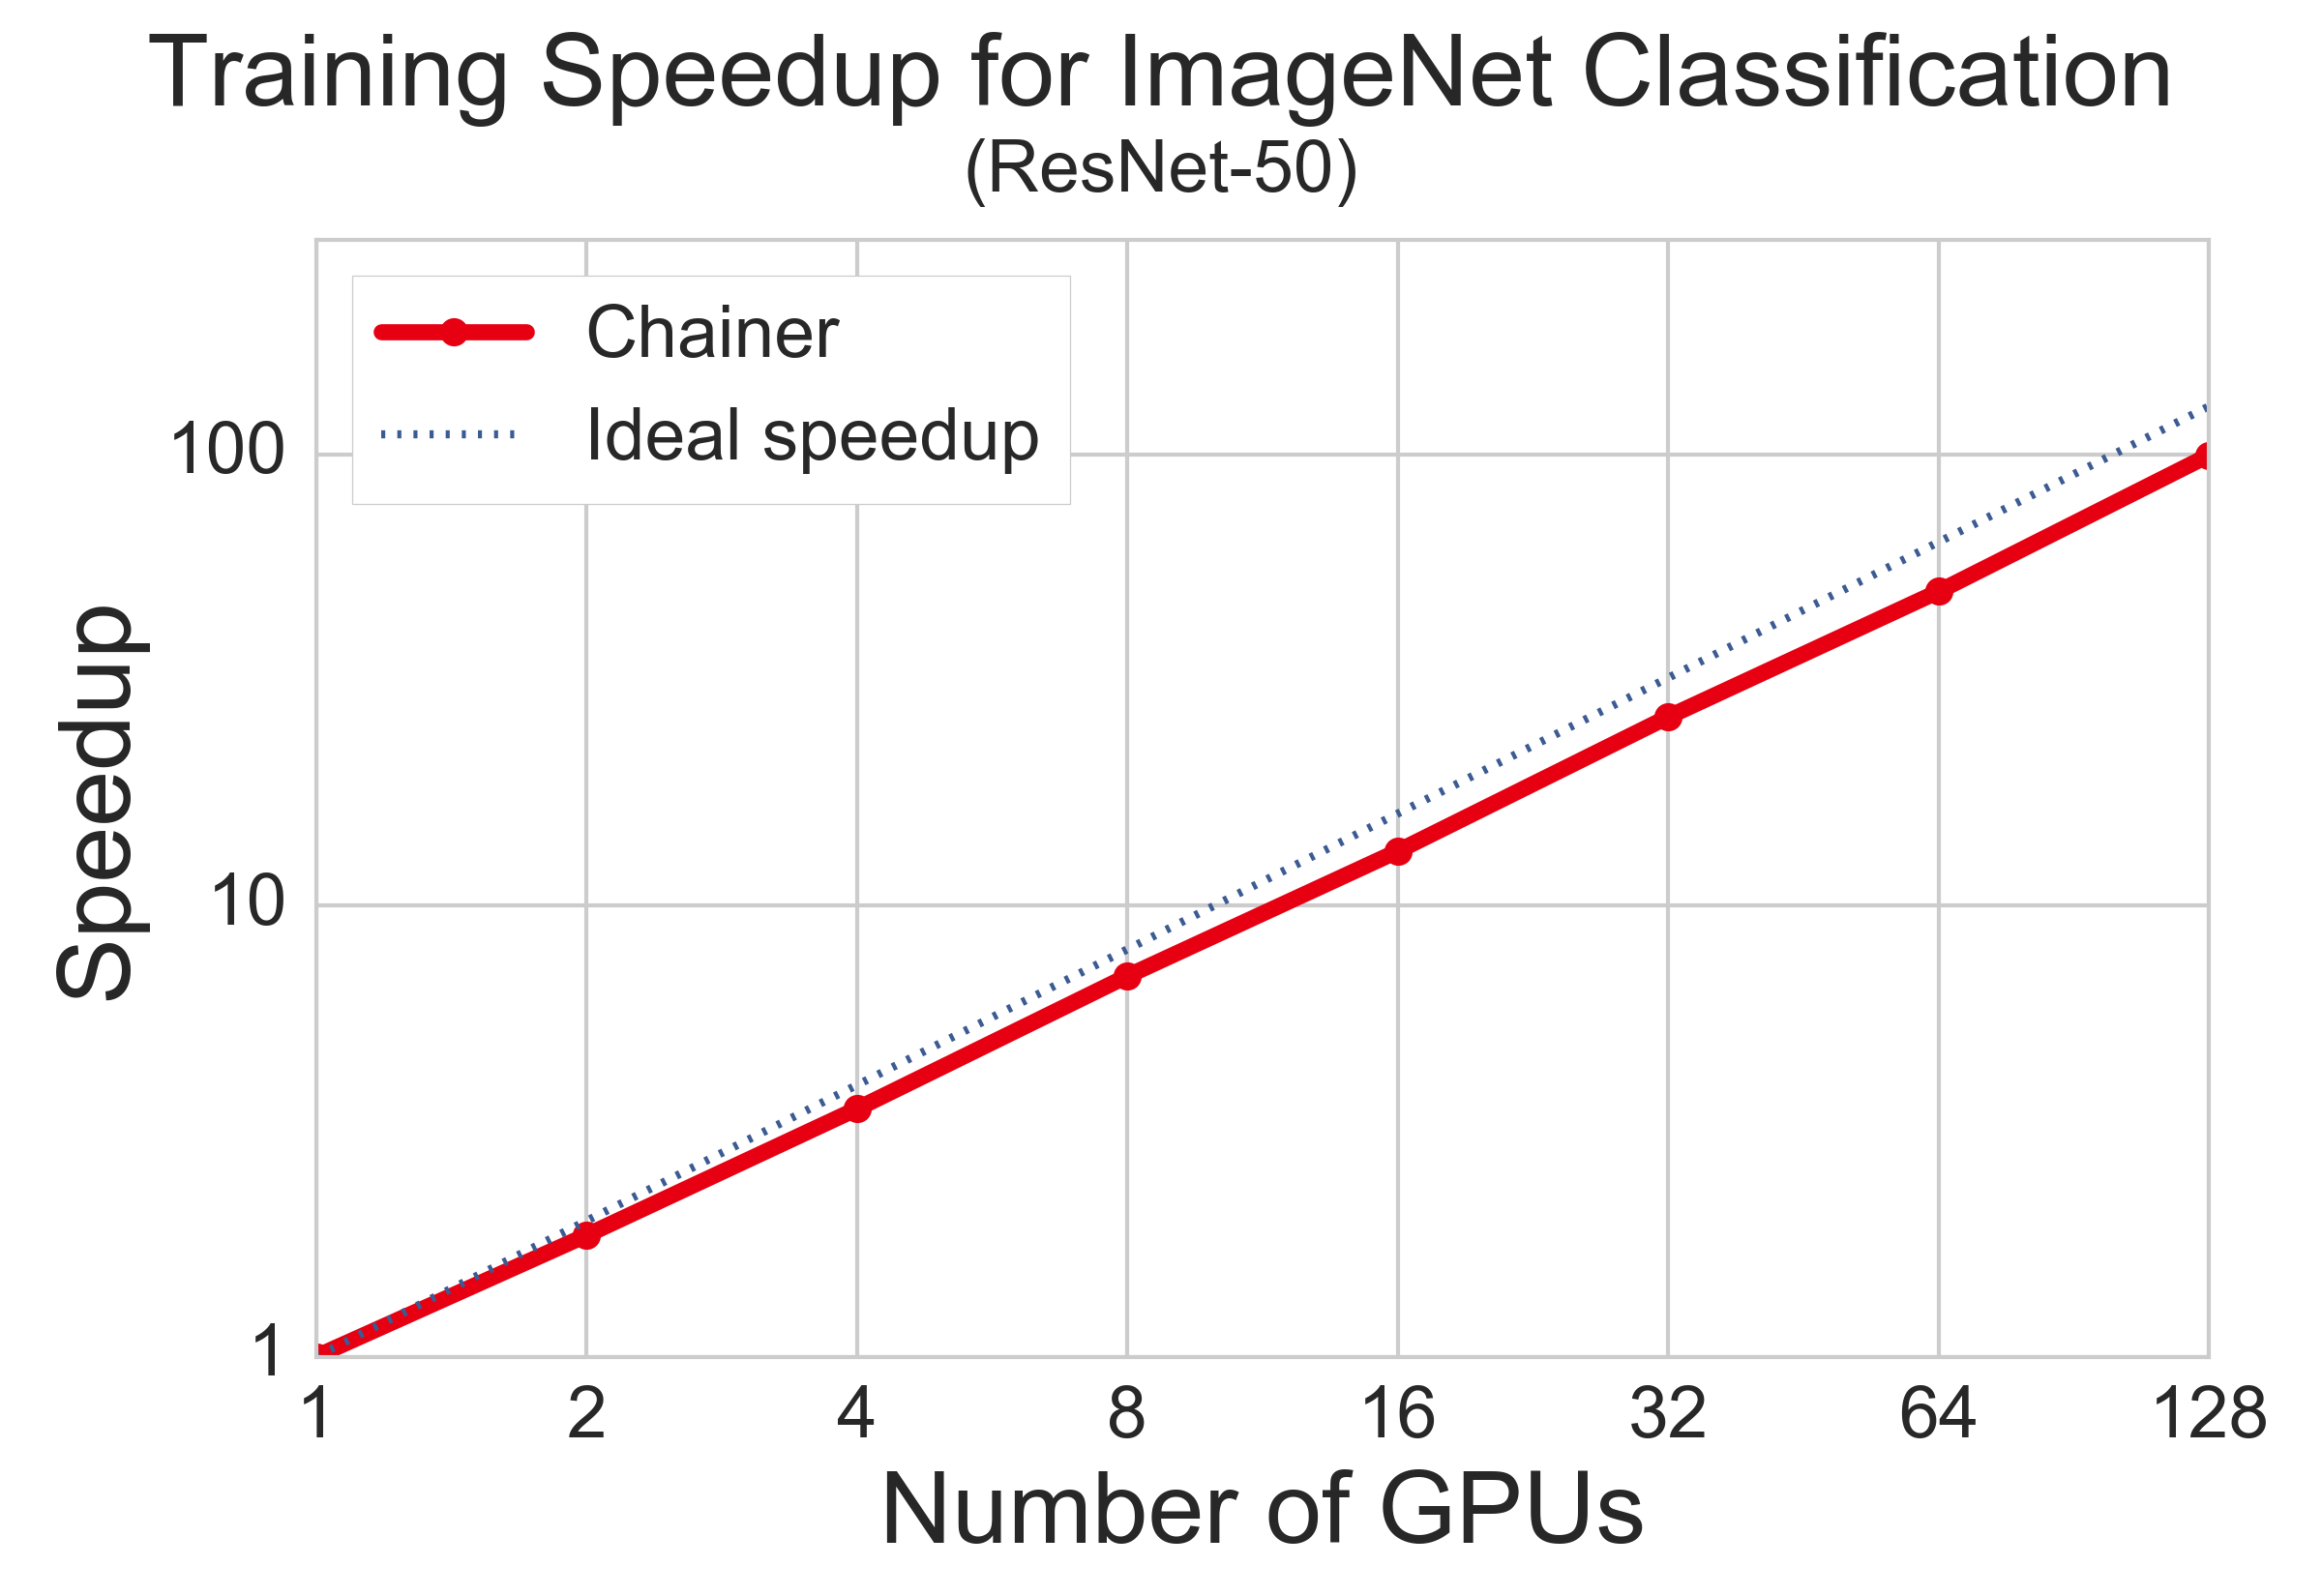 Throughput of ChainerMN